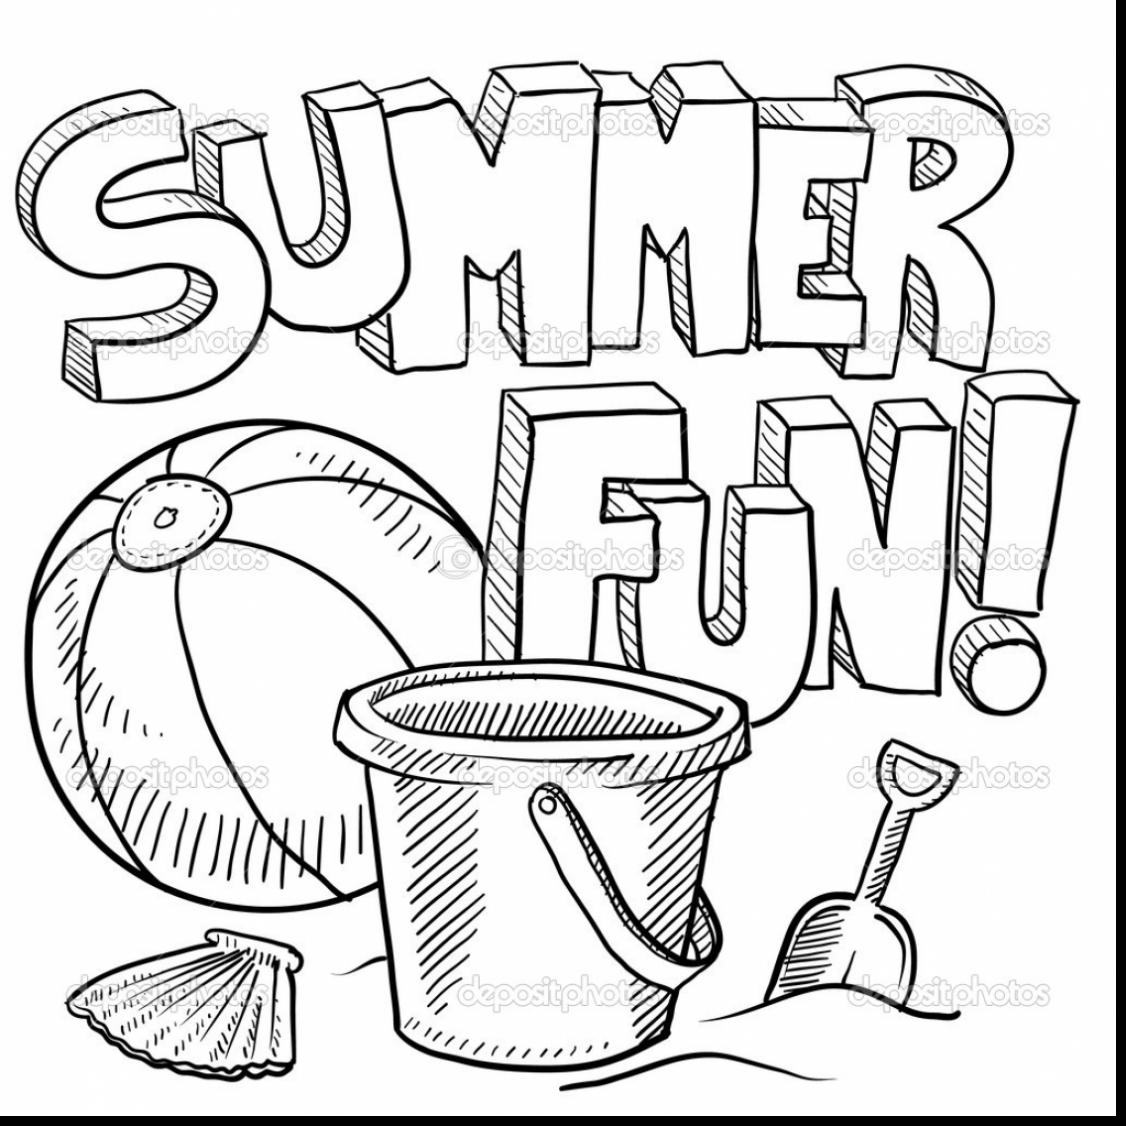 1126x1126 Security Summer Coloring Pages For Older Kids Tree House Fun Page